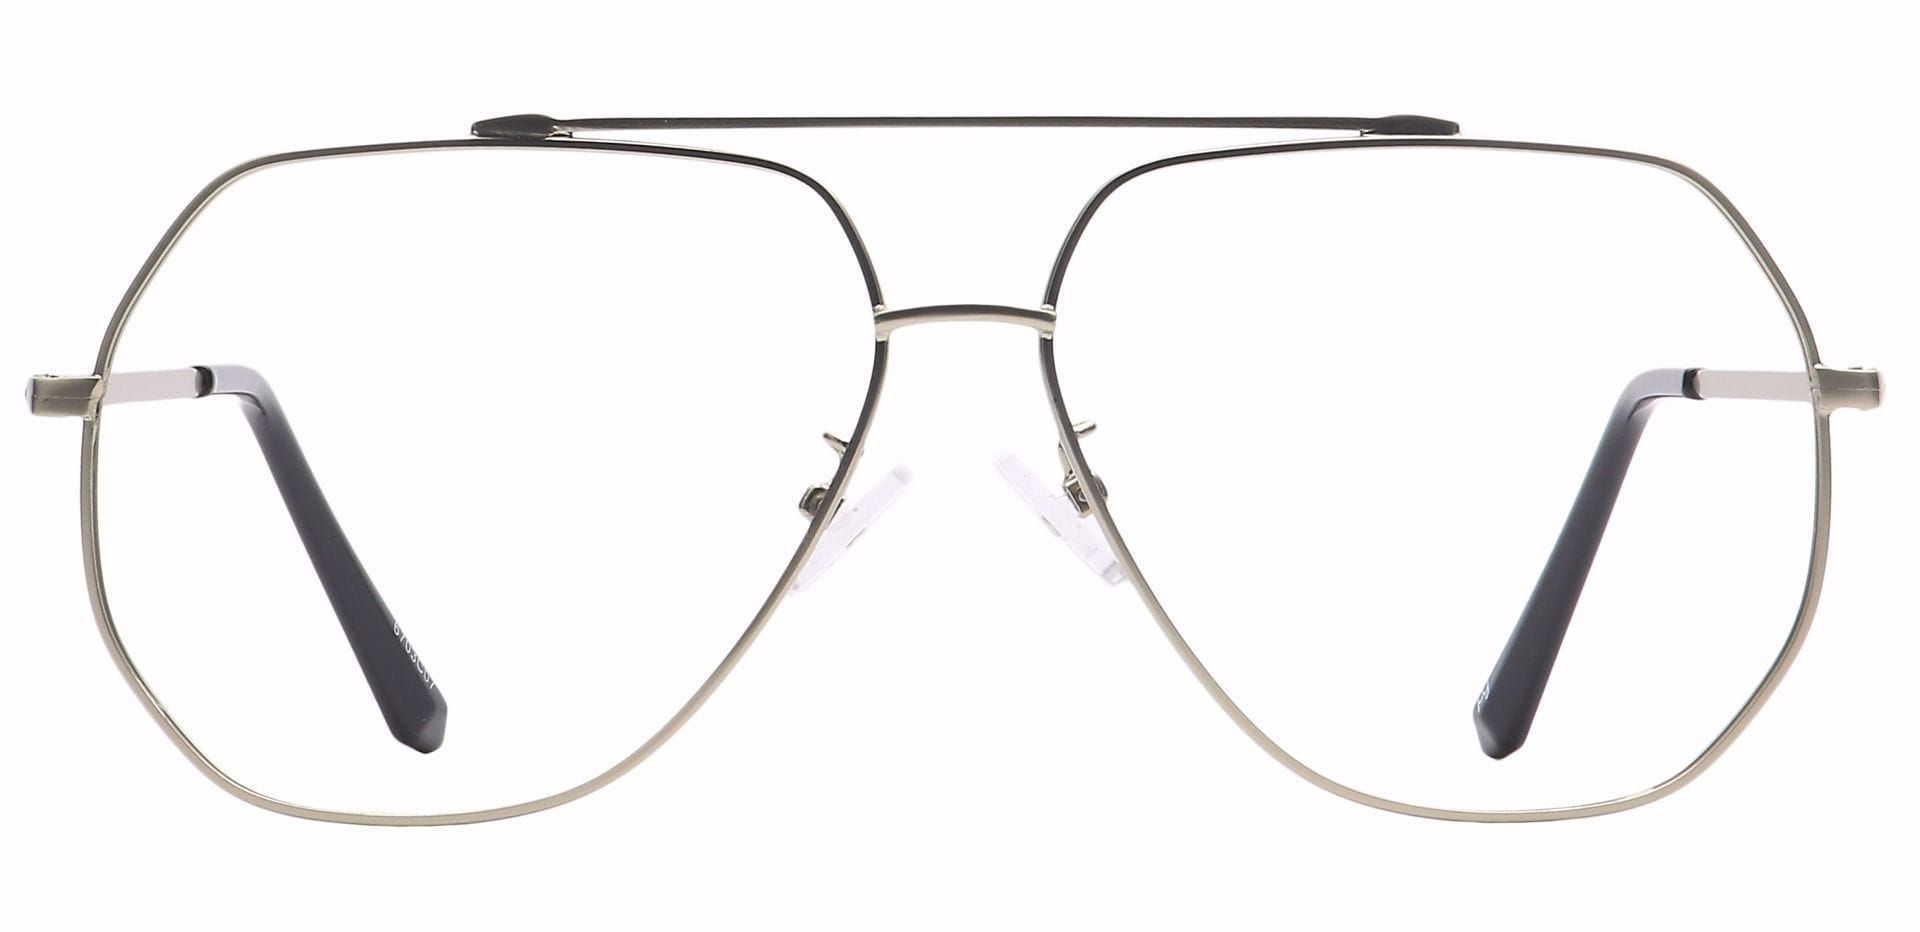 Flair Aviator Reading Glasses - Clear